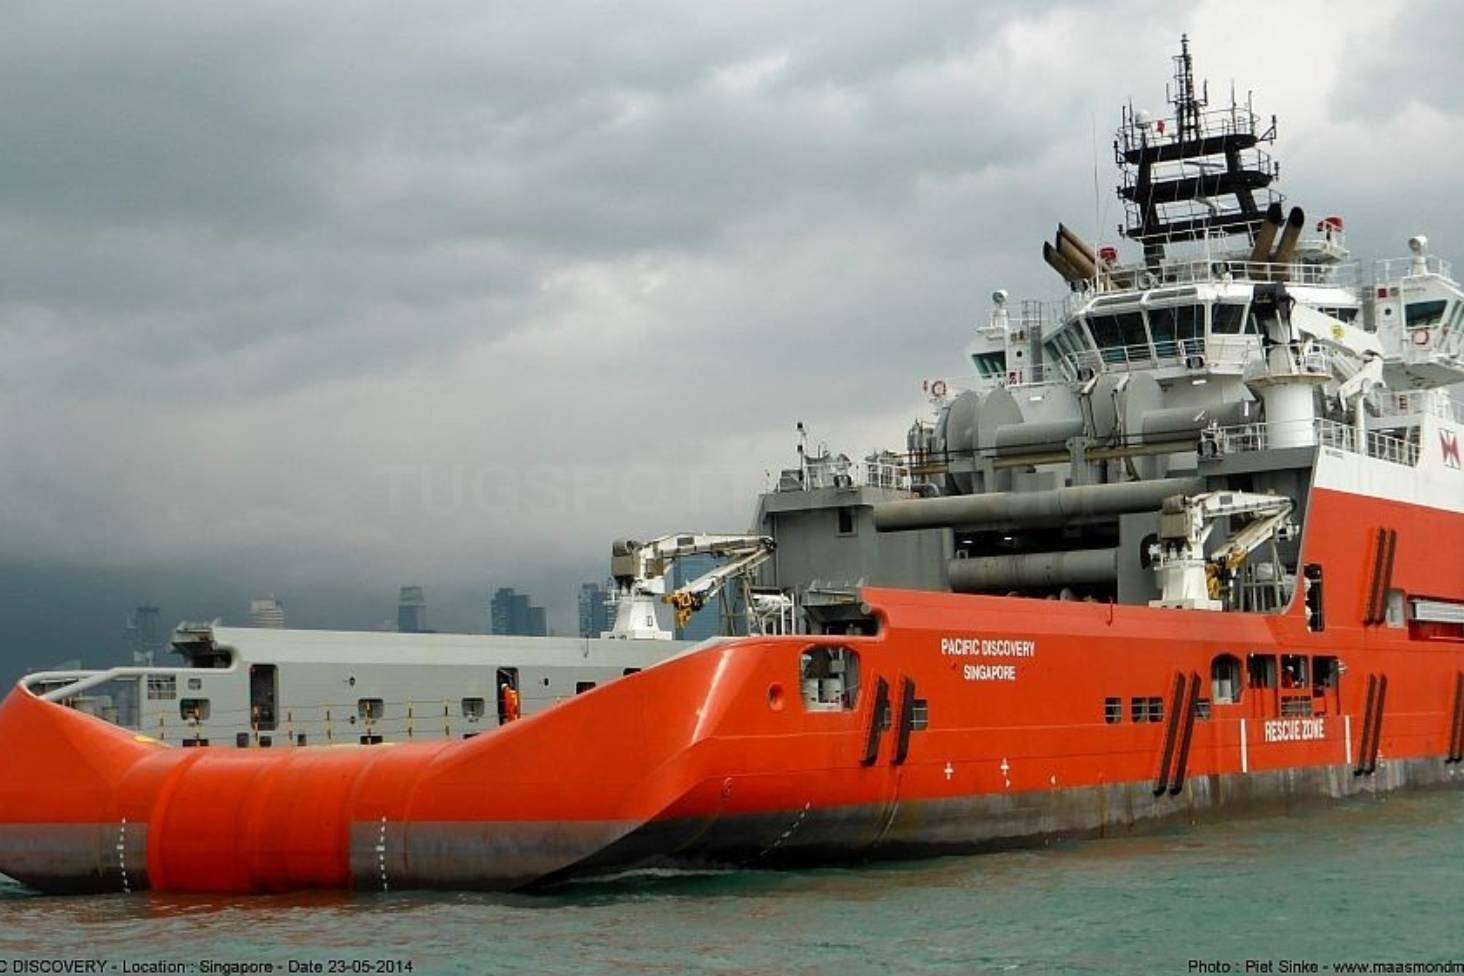 Pacific Discovery vessel towed to Nelson after being damaged in